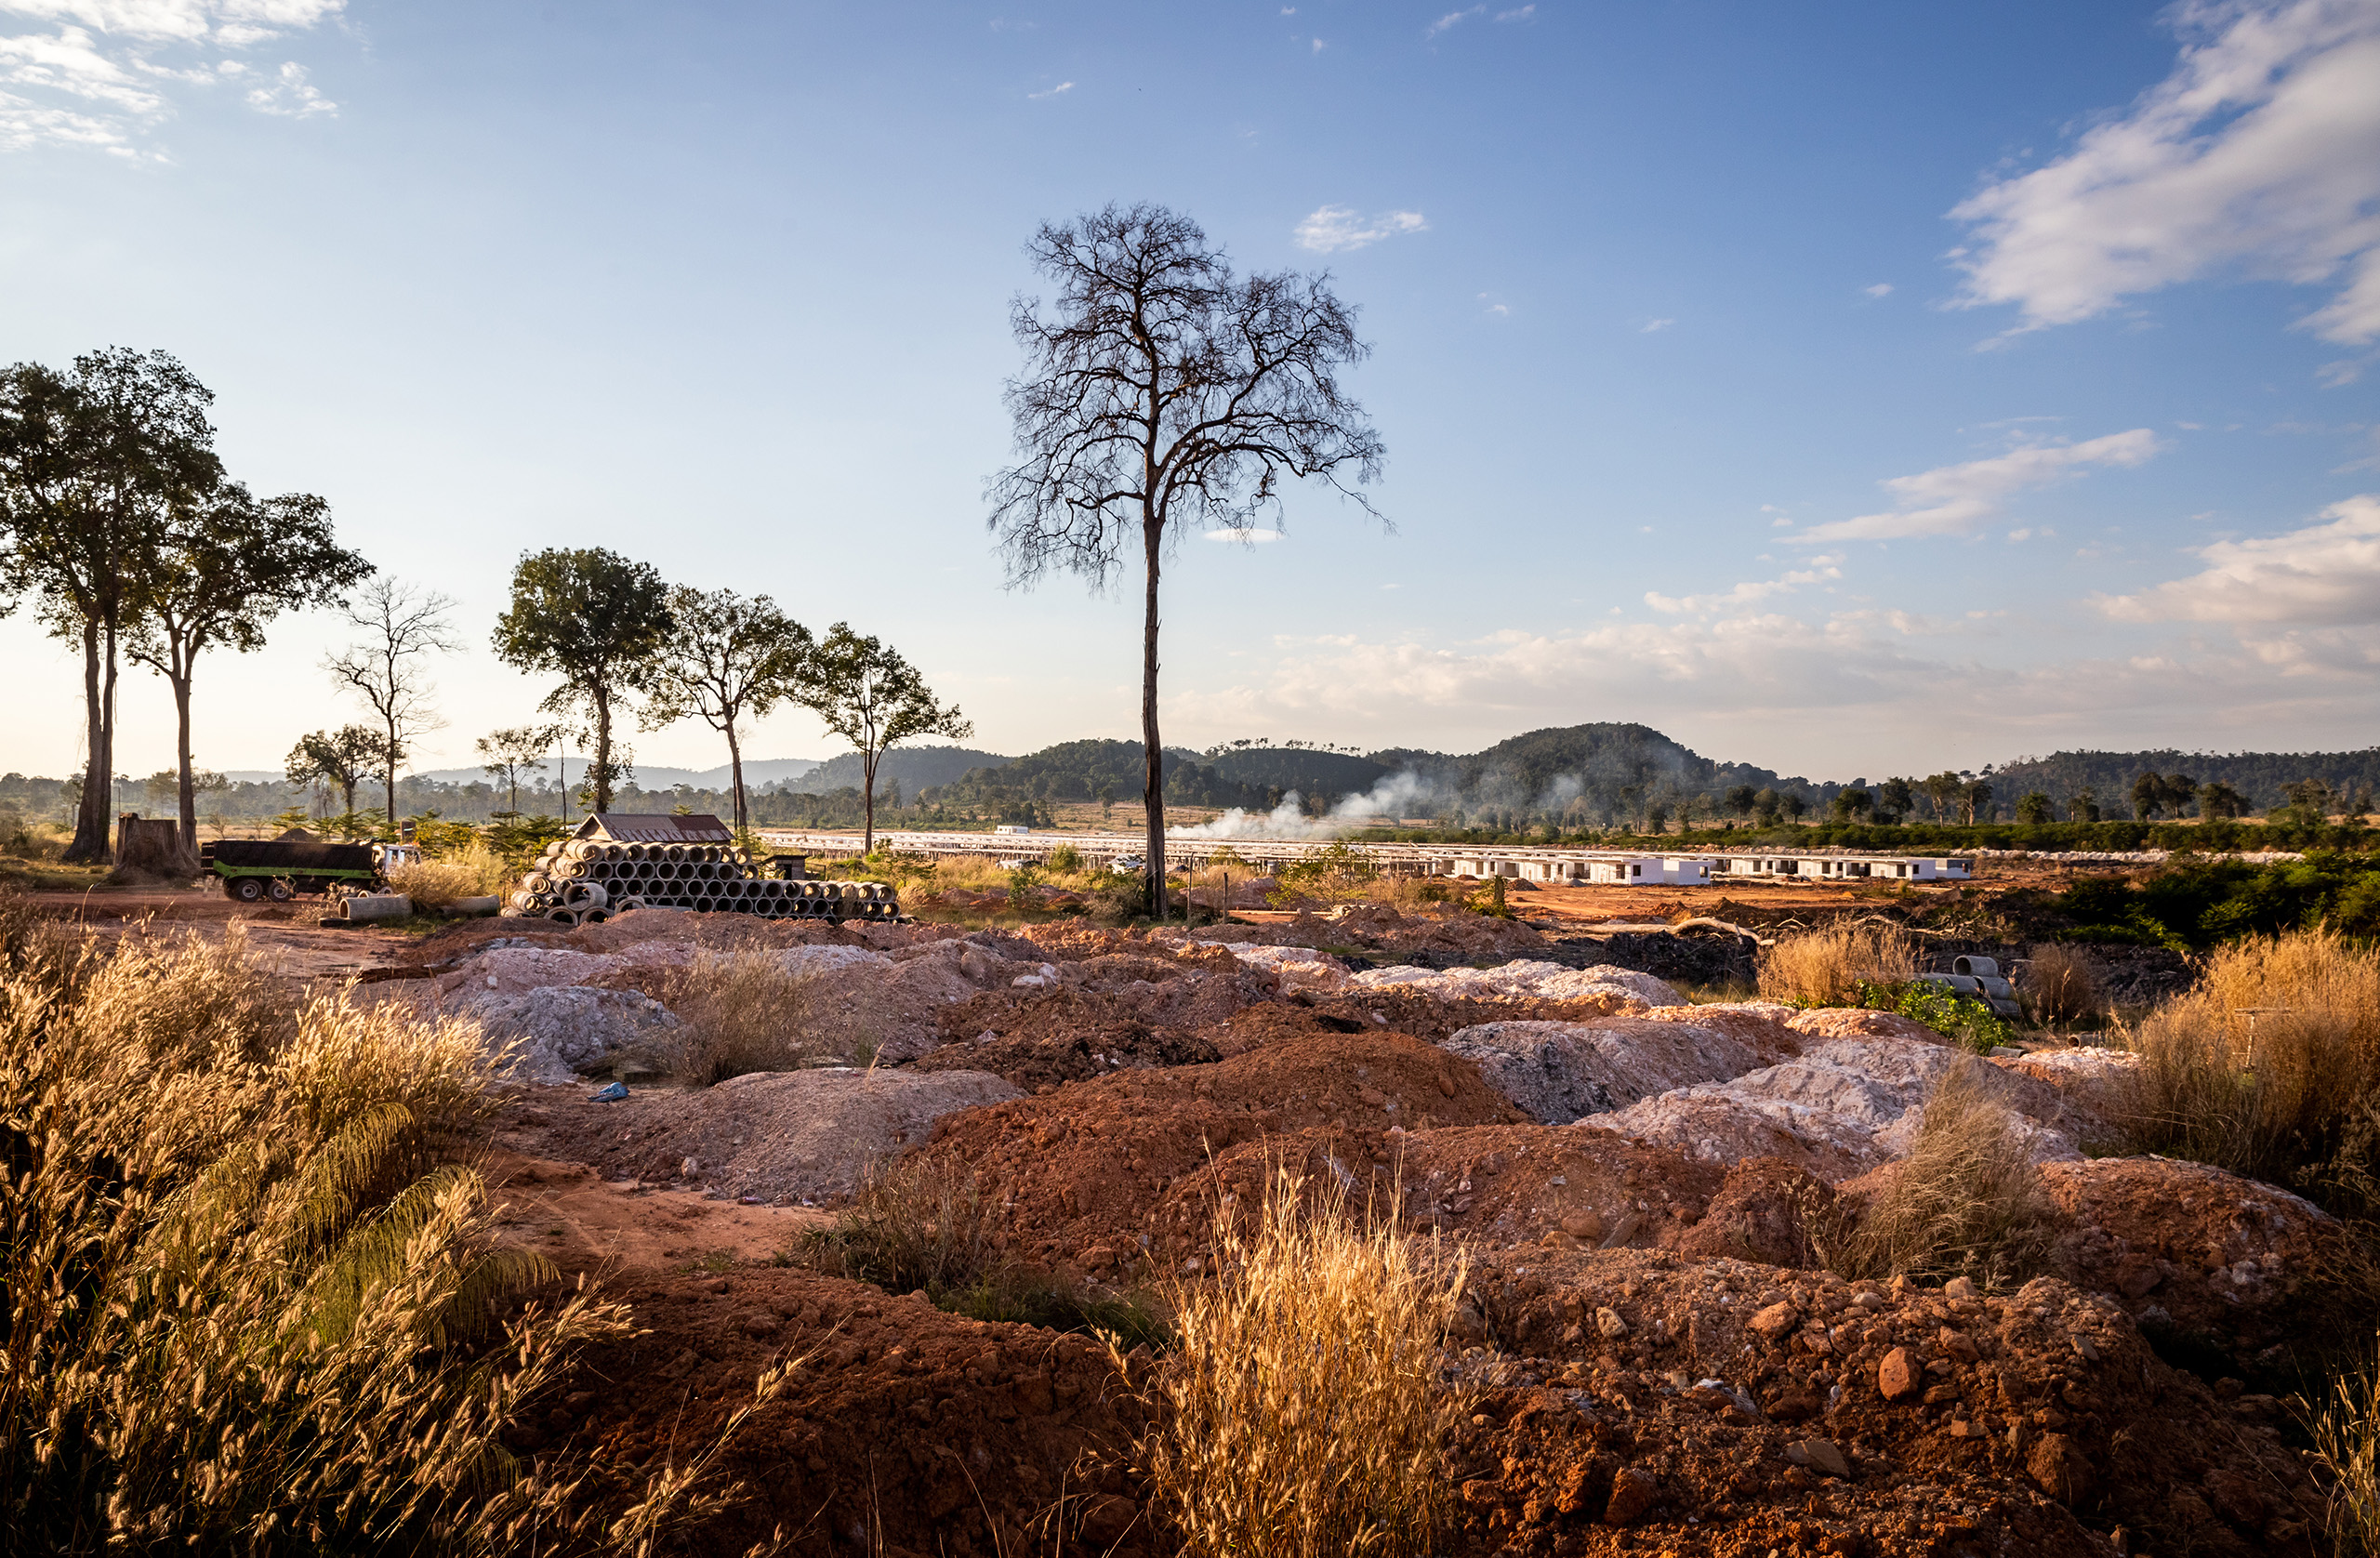 Chinese developer Yeejia has cleared large areas of once-forested land in Cambodia's Ream National Park